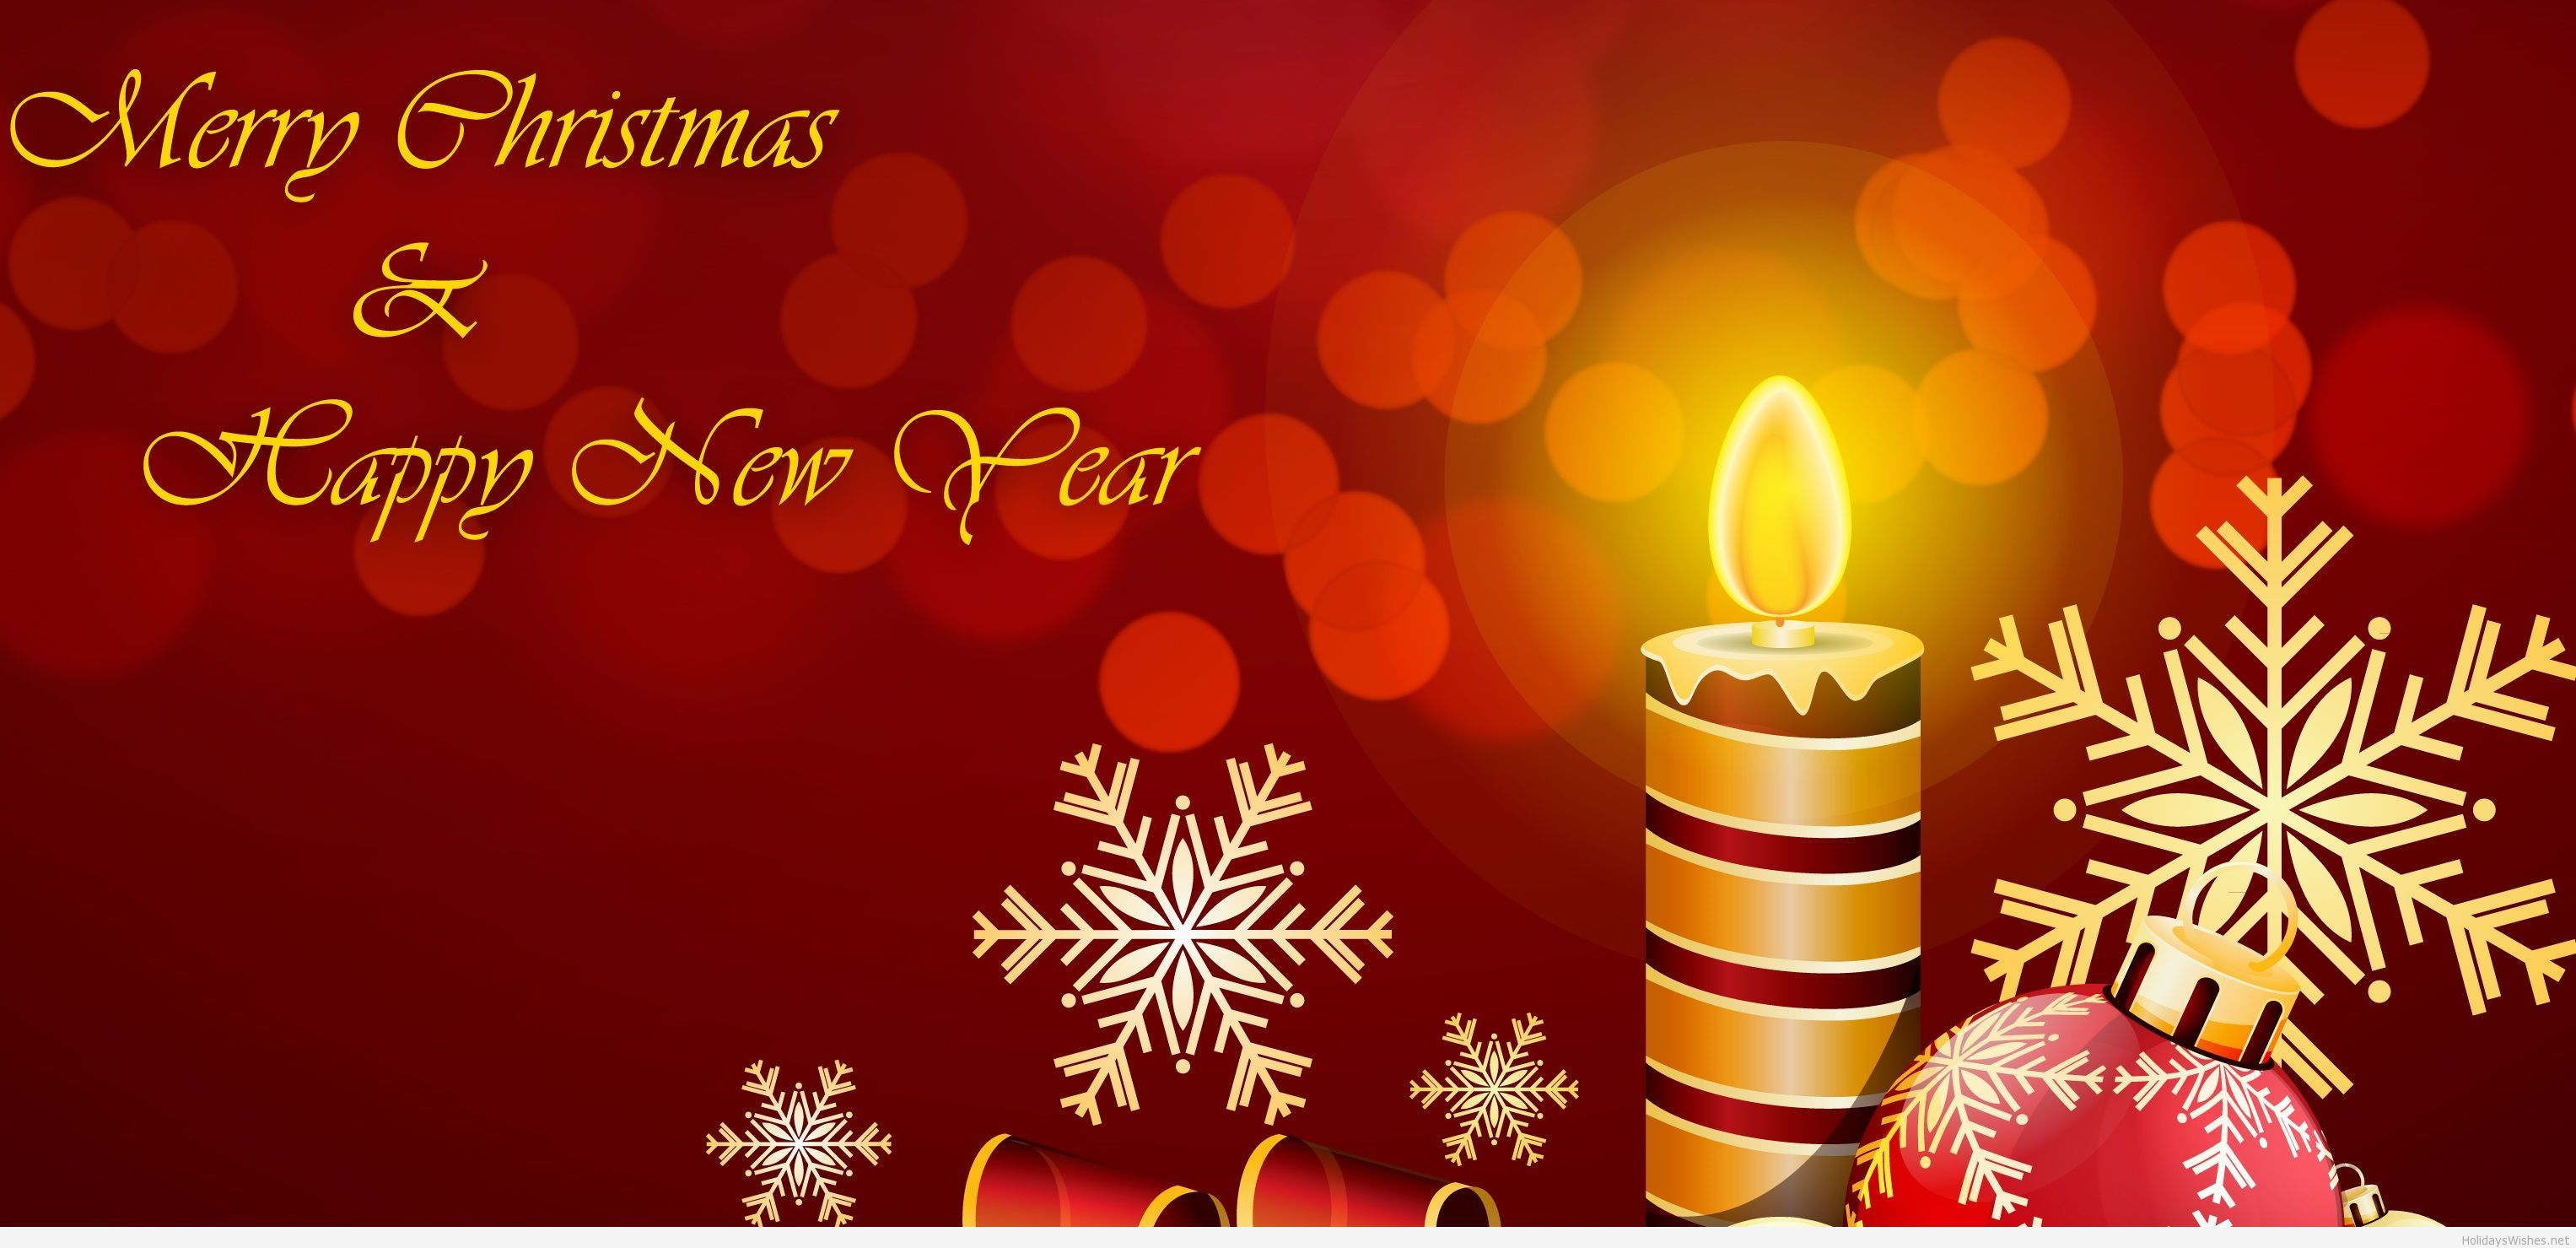 merry christmas and happy new year hd candle wallpaper 2015 christmas desktop wish you merry christmas merry christmas wallpaper merry christmas and happy new year hd